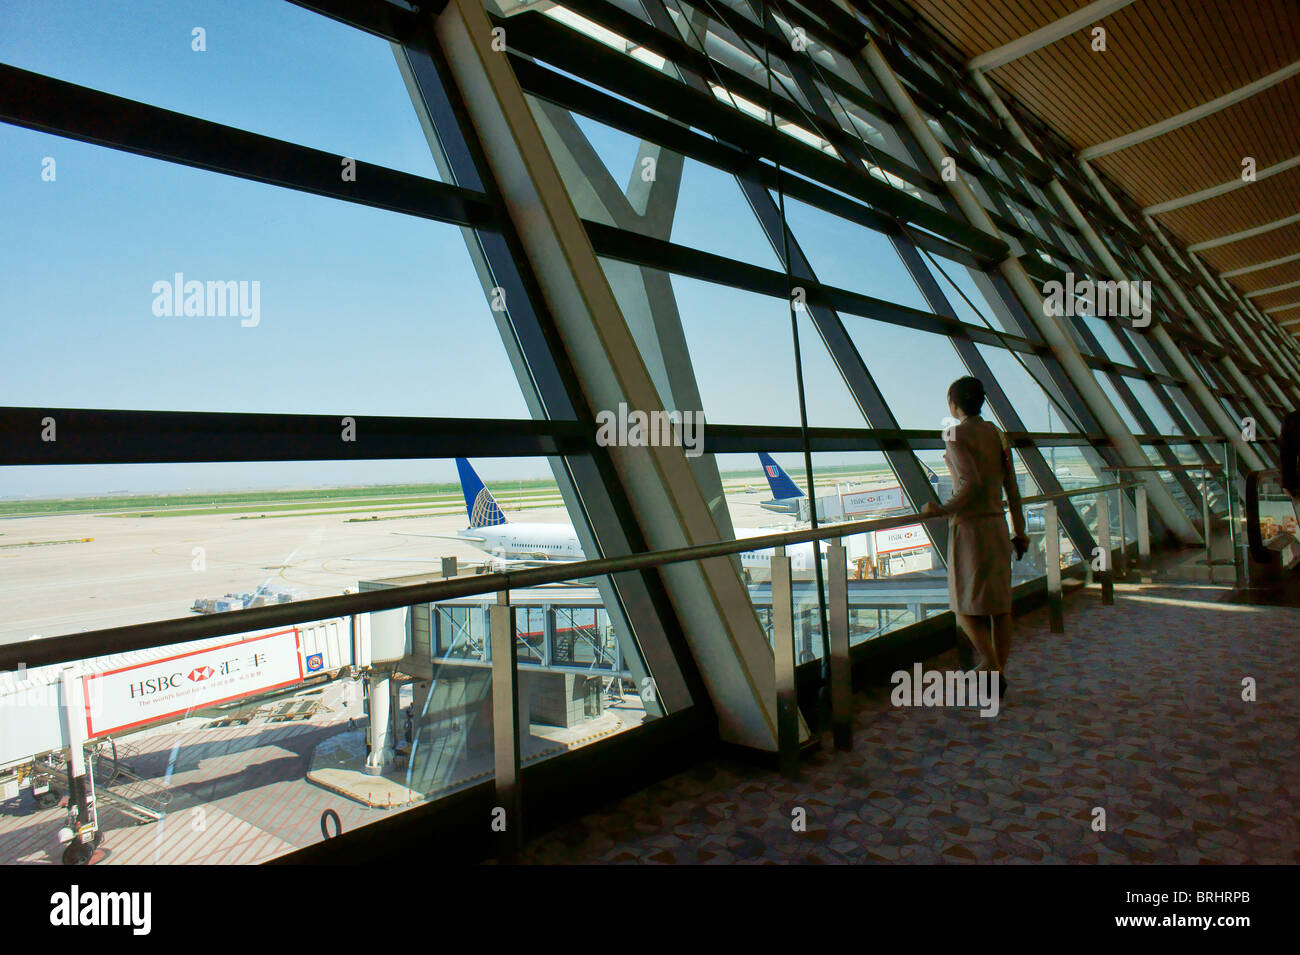 Shanghai, China. Observation deck window onto runway apron. Departure lounge, Pudong International Airport, Shanghai - Stock Image